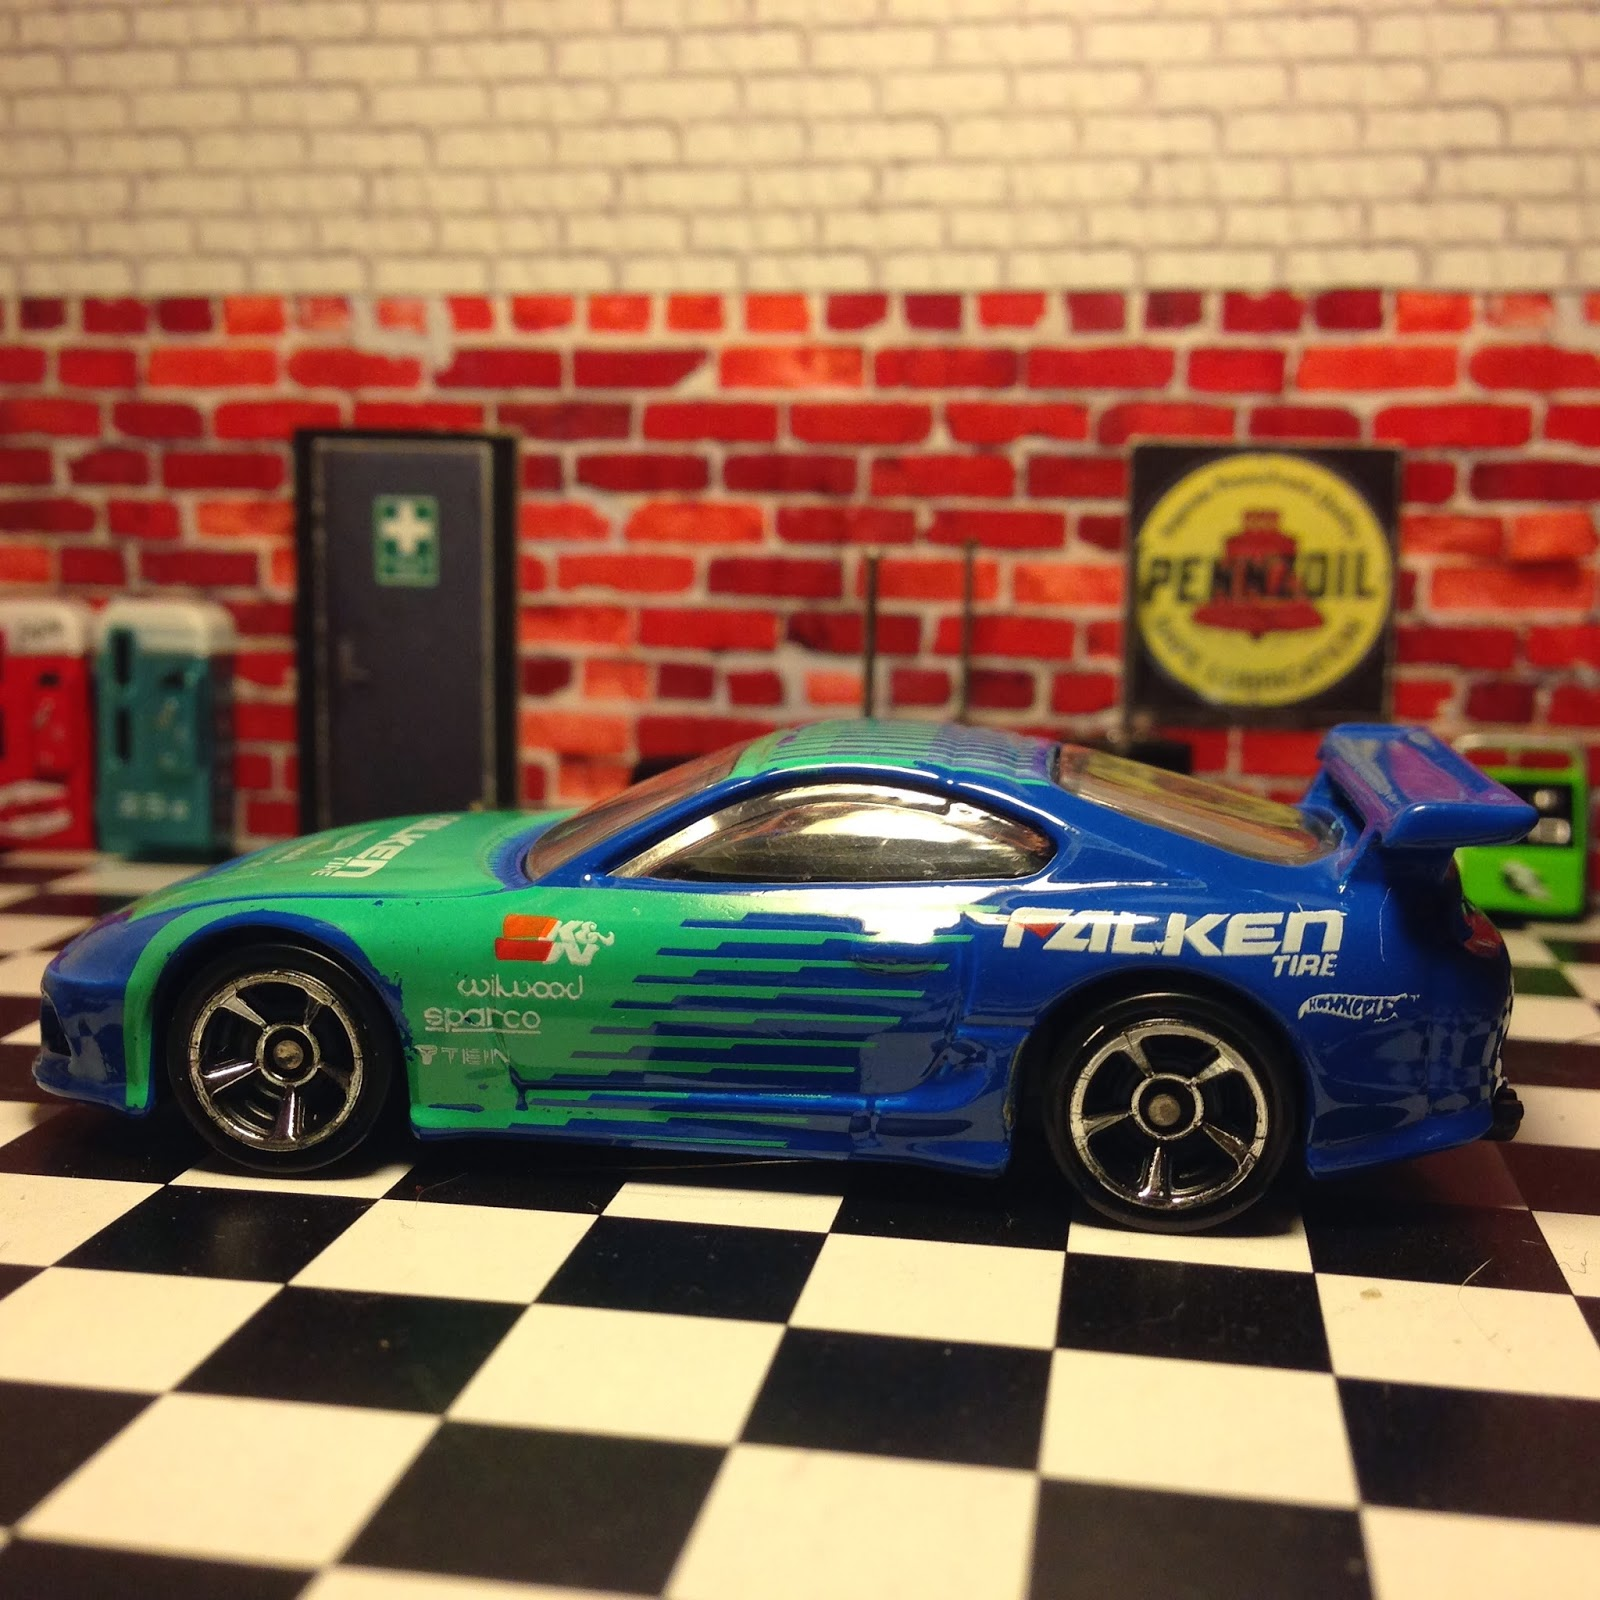 Just Unveiled: 2014 Hot Wheels Toyota Supra in Falken Tire livery ...